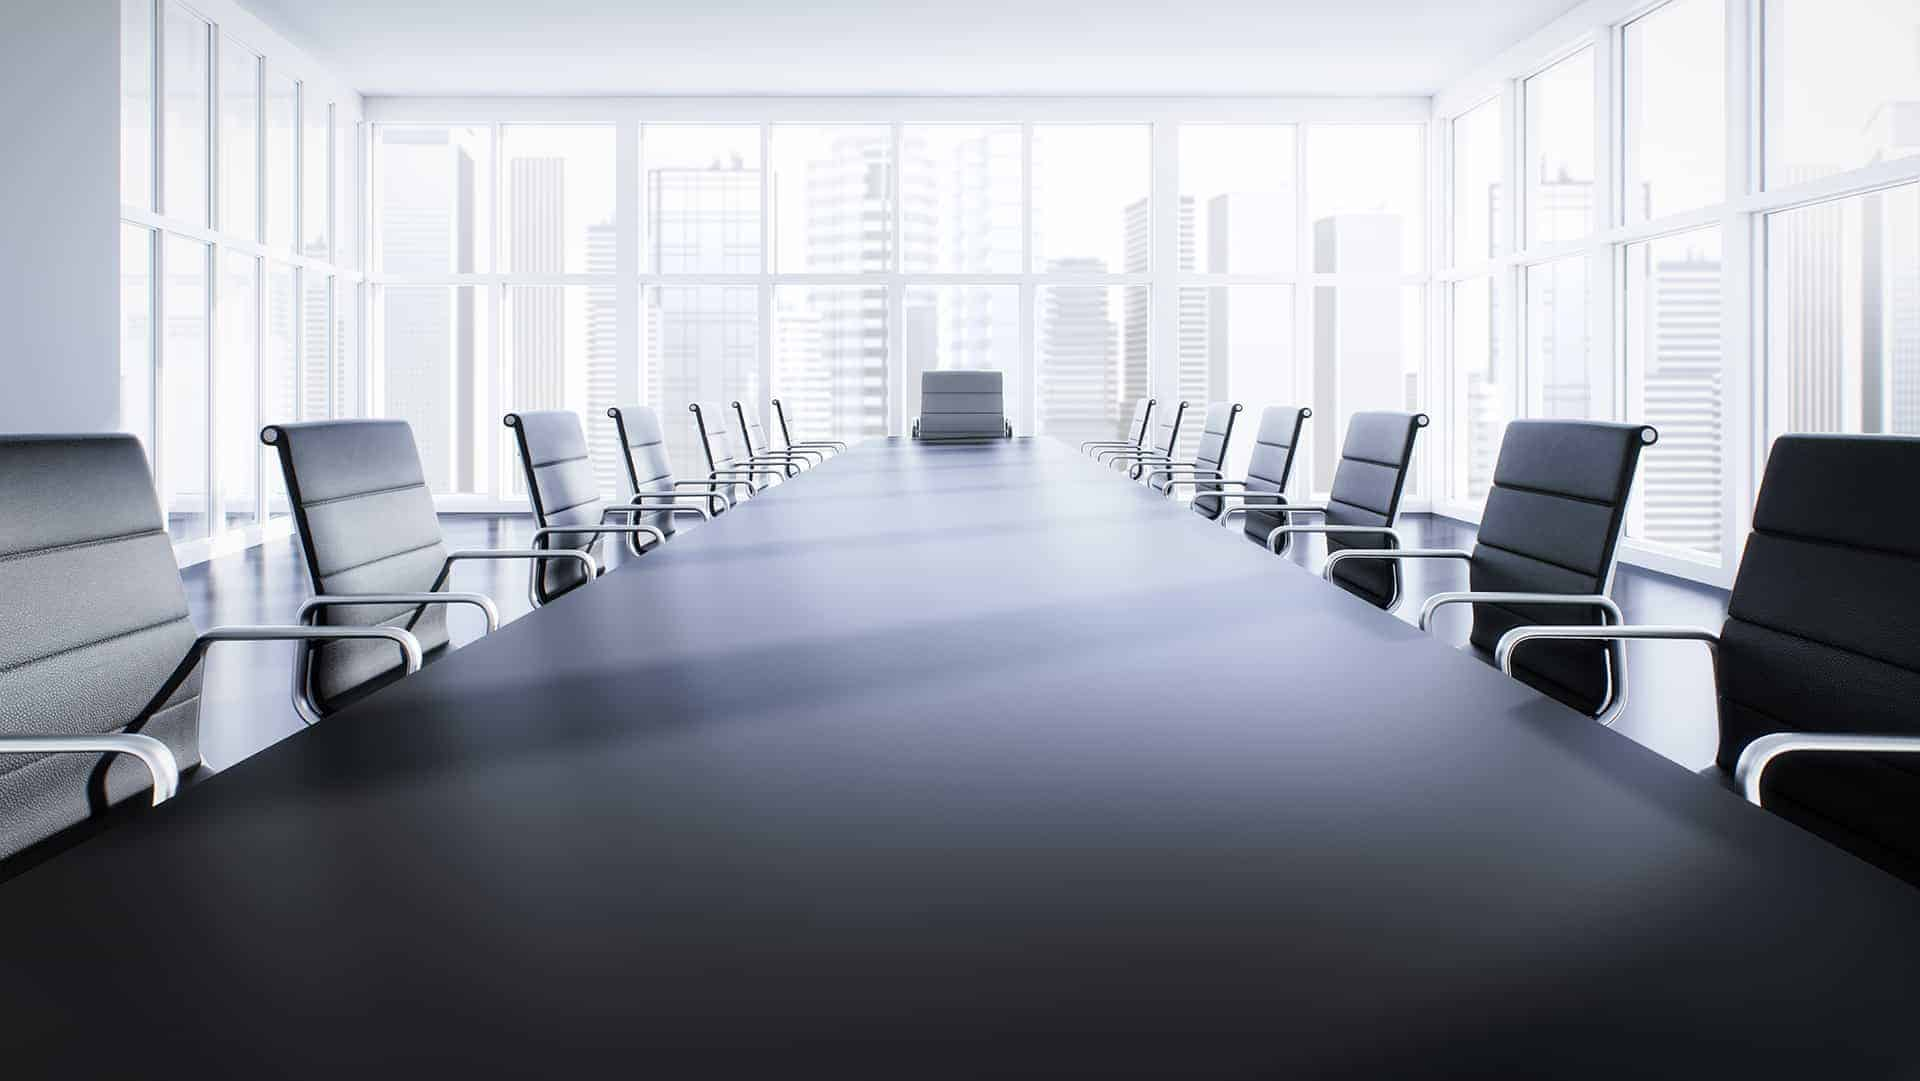 corporate table with chairs